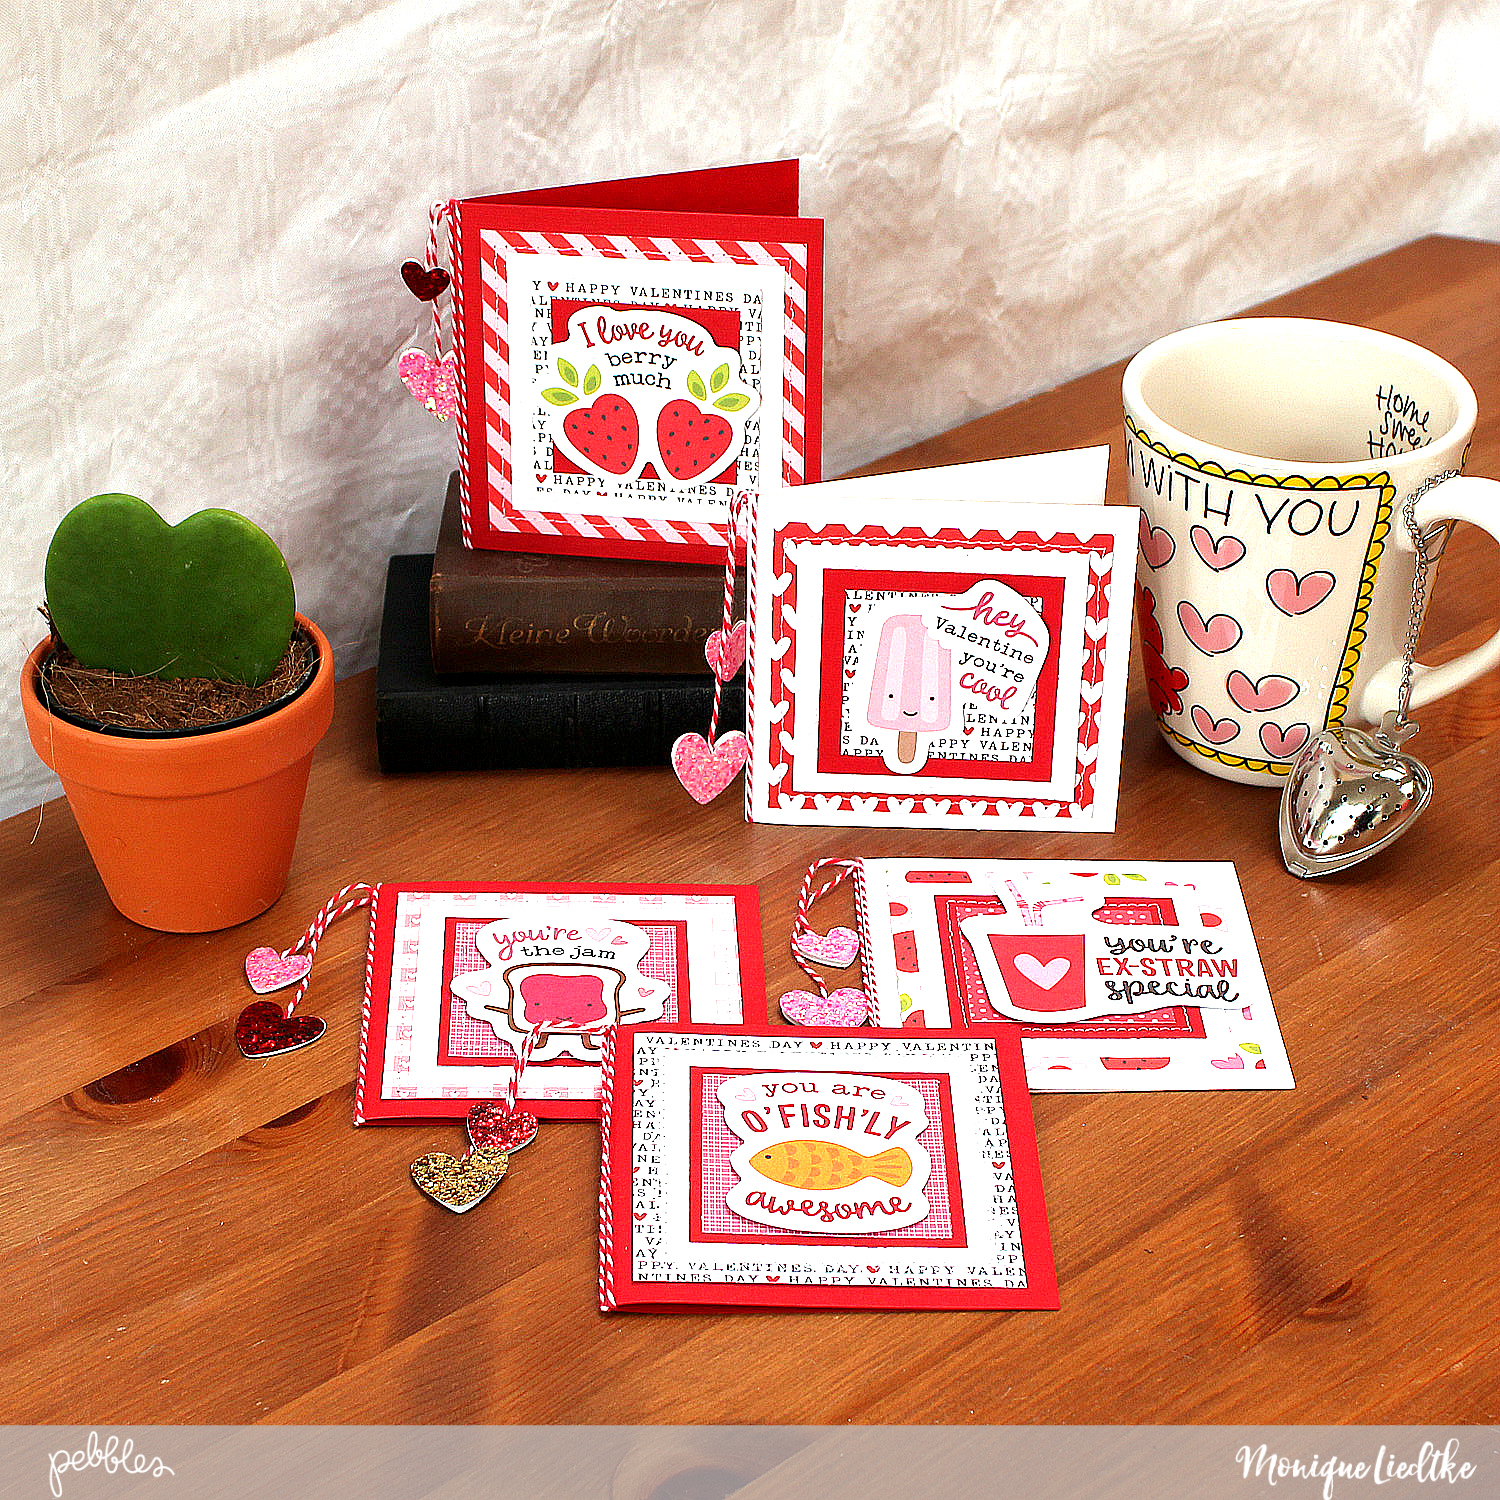 Valentines Cards made by @MoniqueLiedtke using the #MyFunnyValentine collection from @PebblesInc.